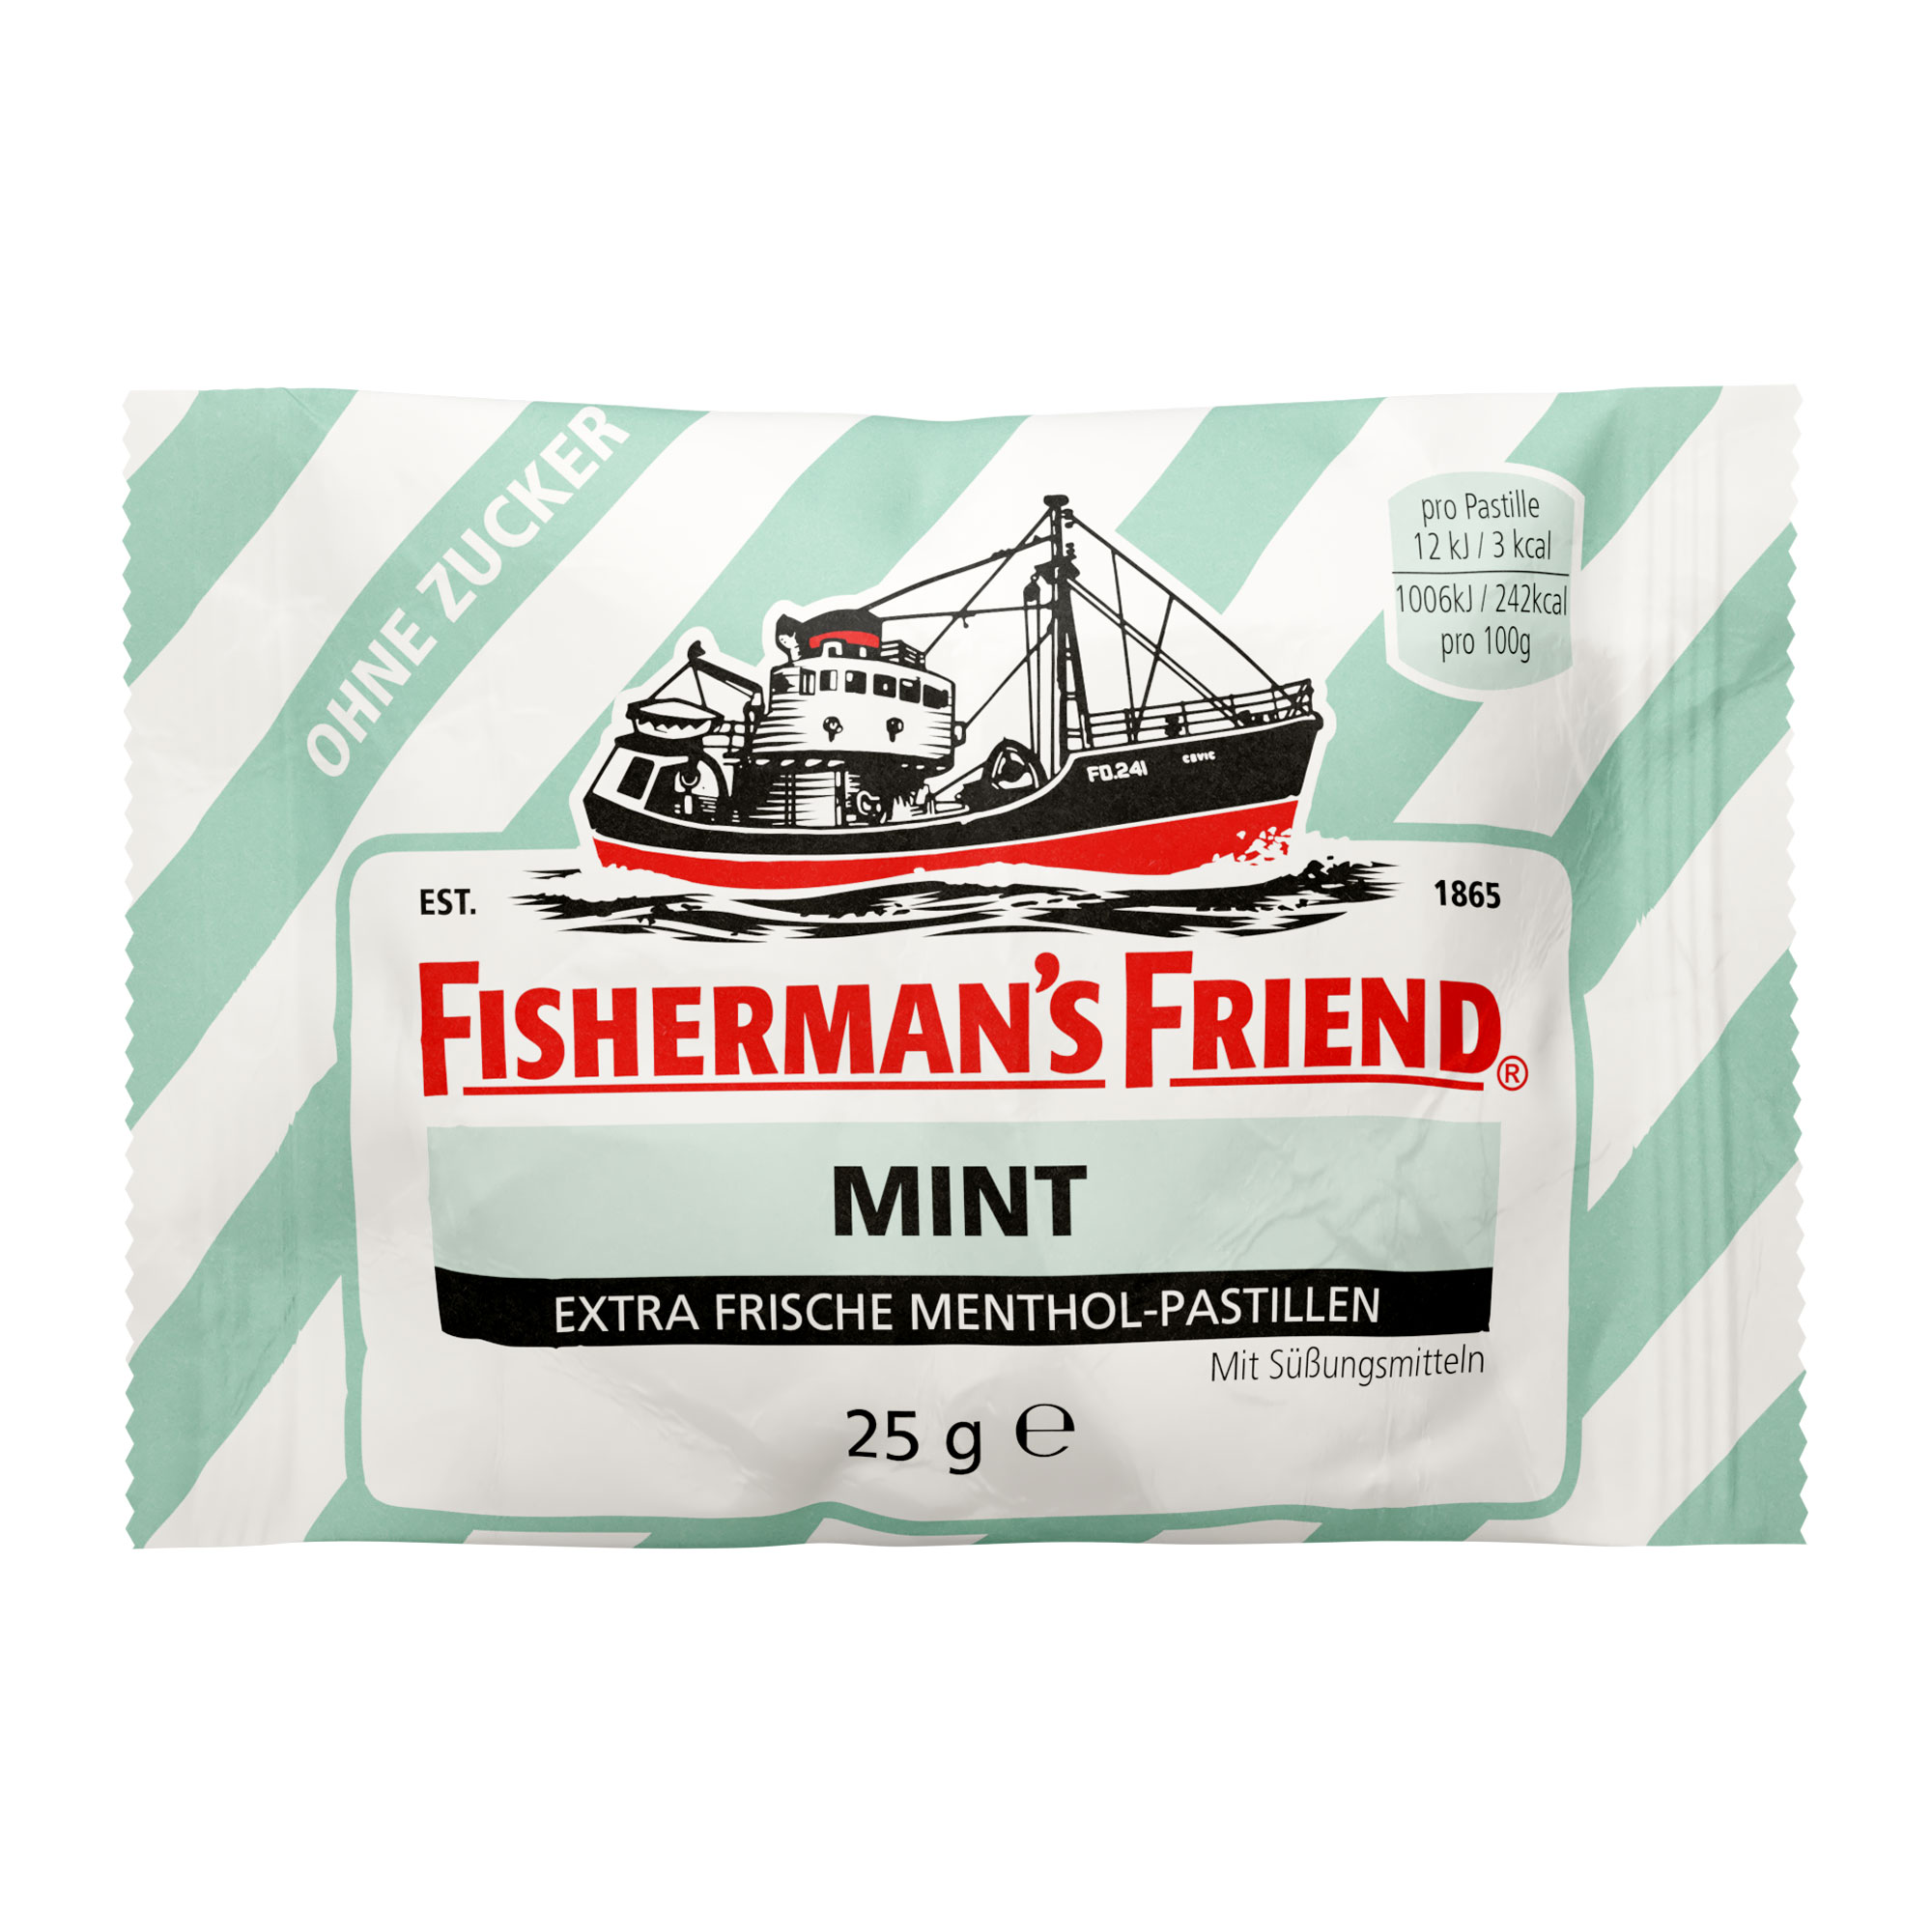 Fishermans Friend mint Pastillen ohne Zucker